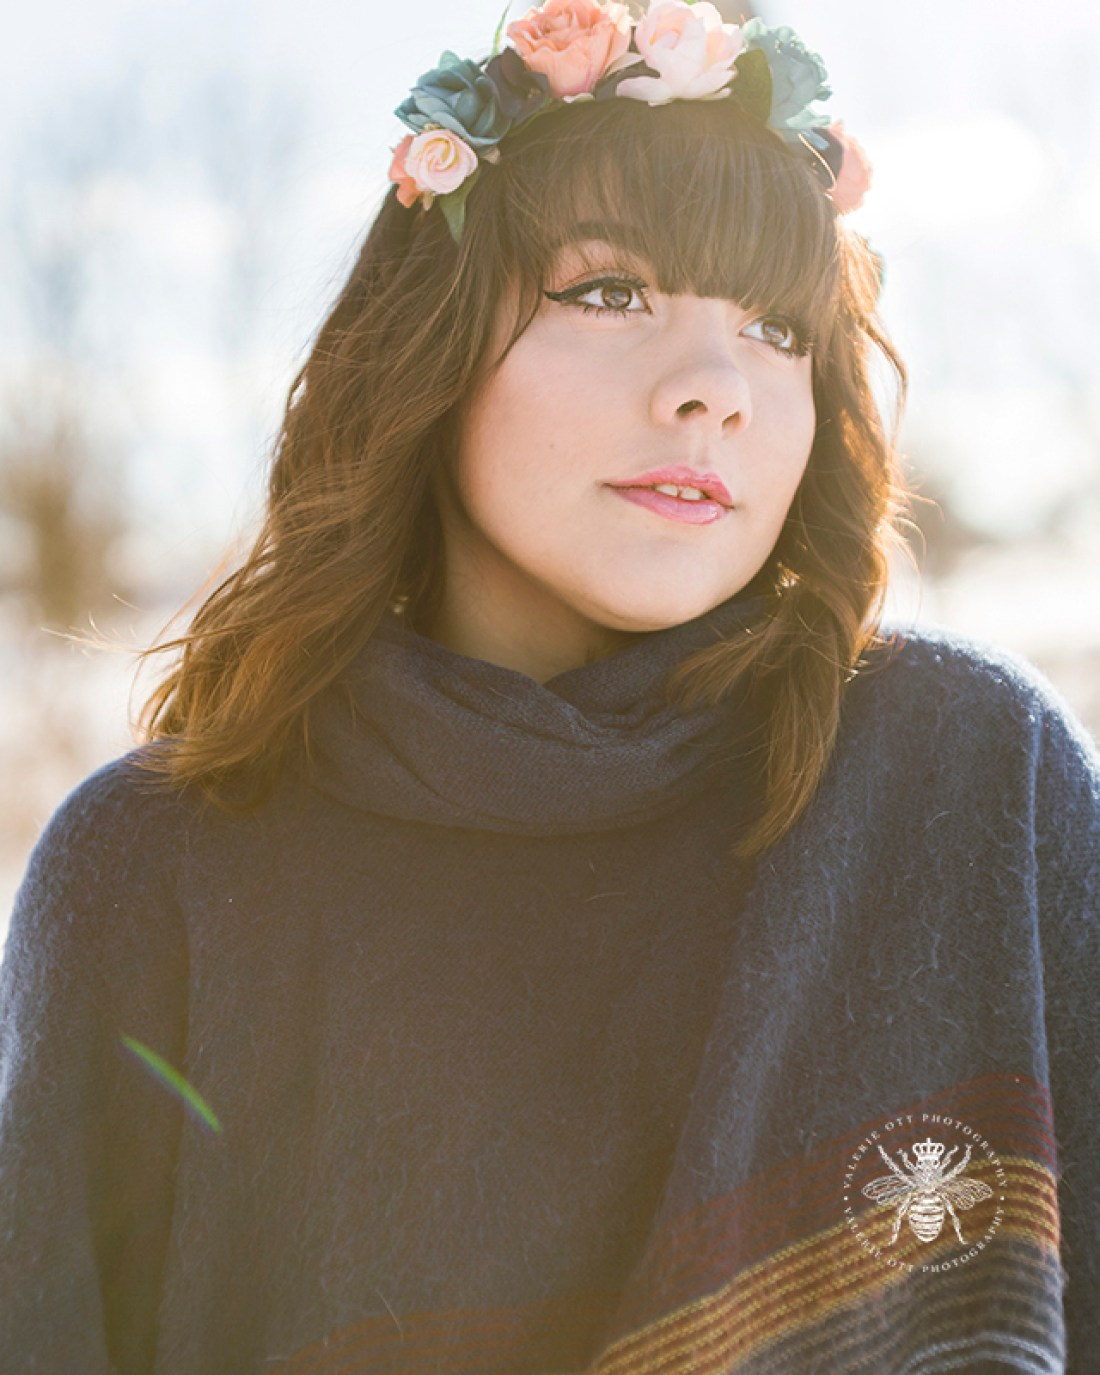 senior girl poses in flower crown and sweater